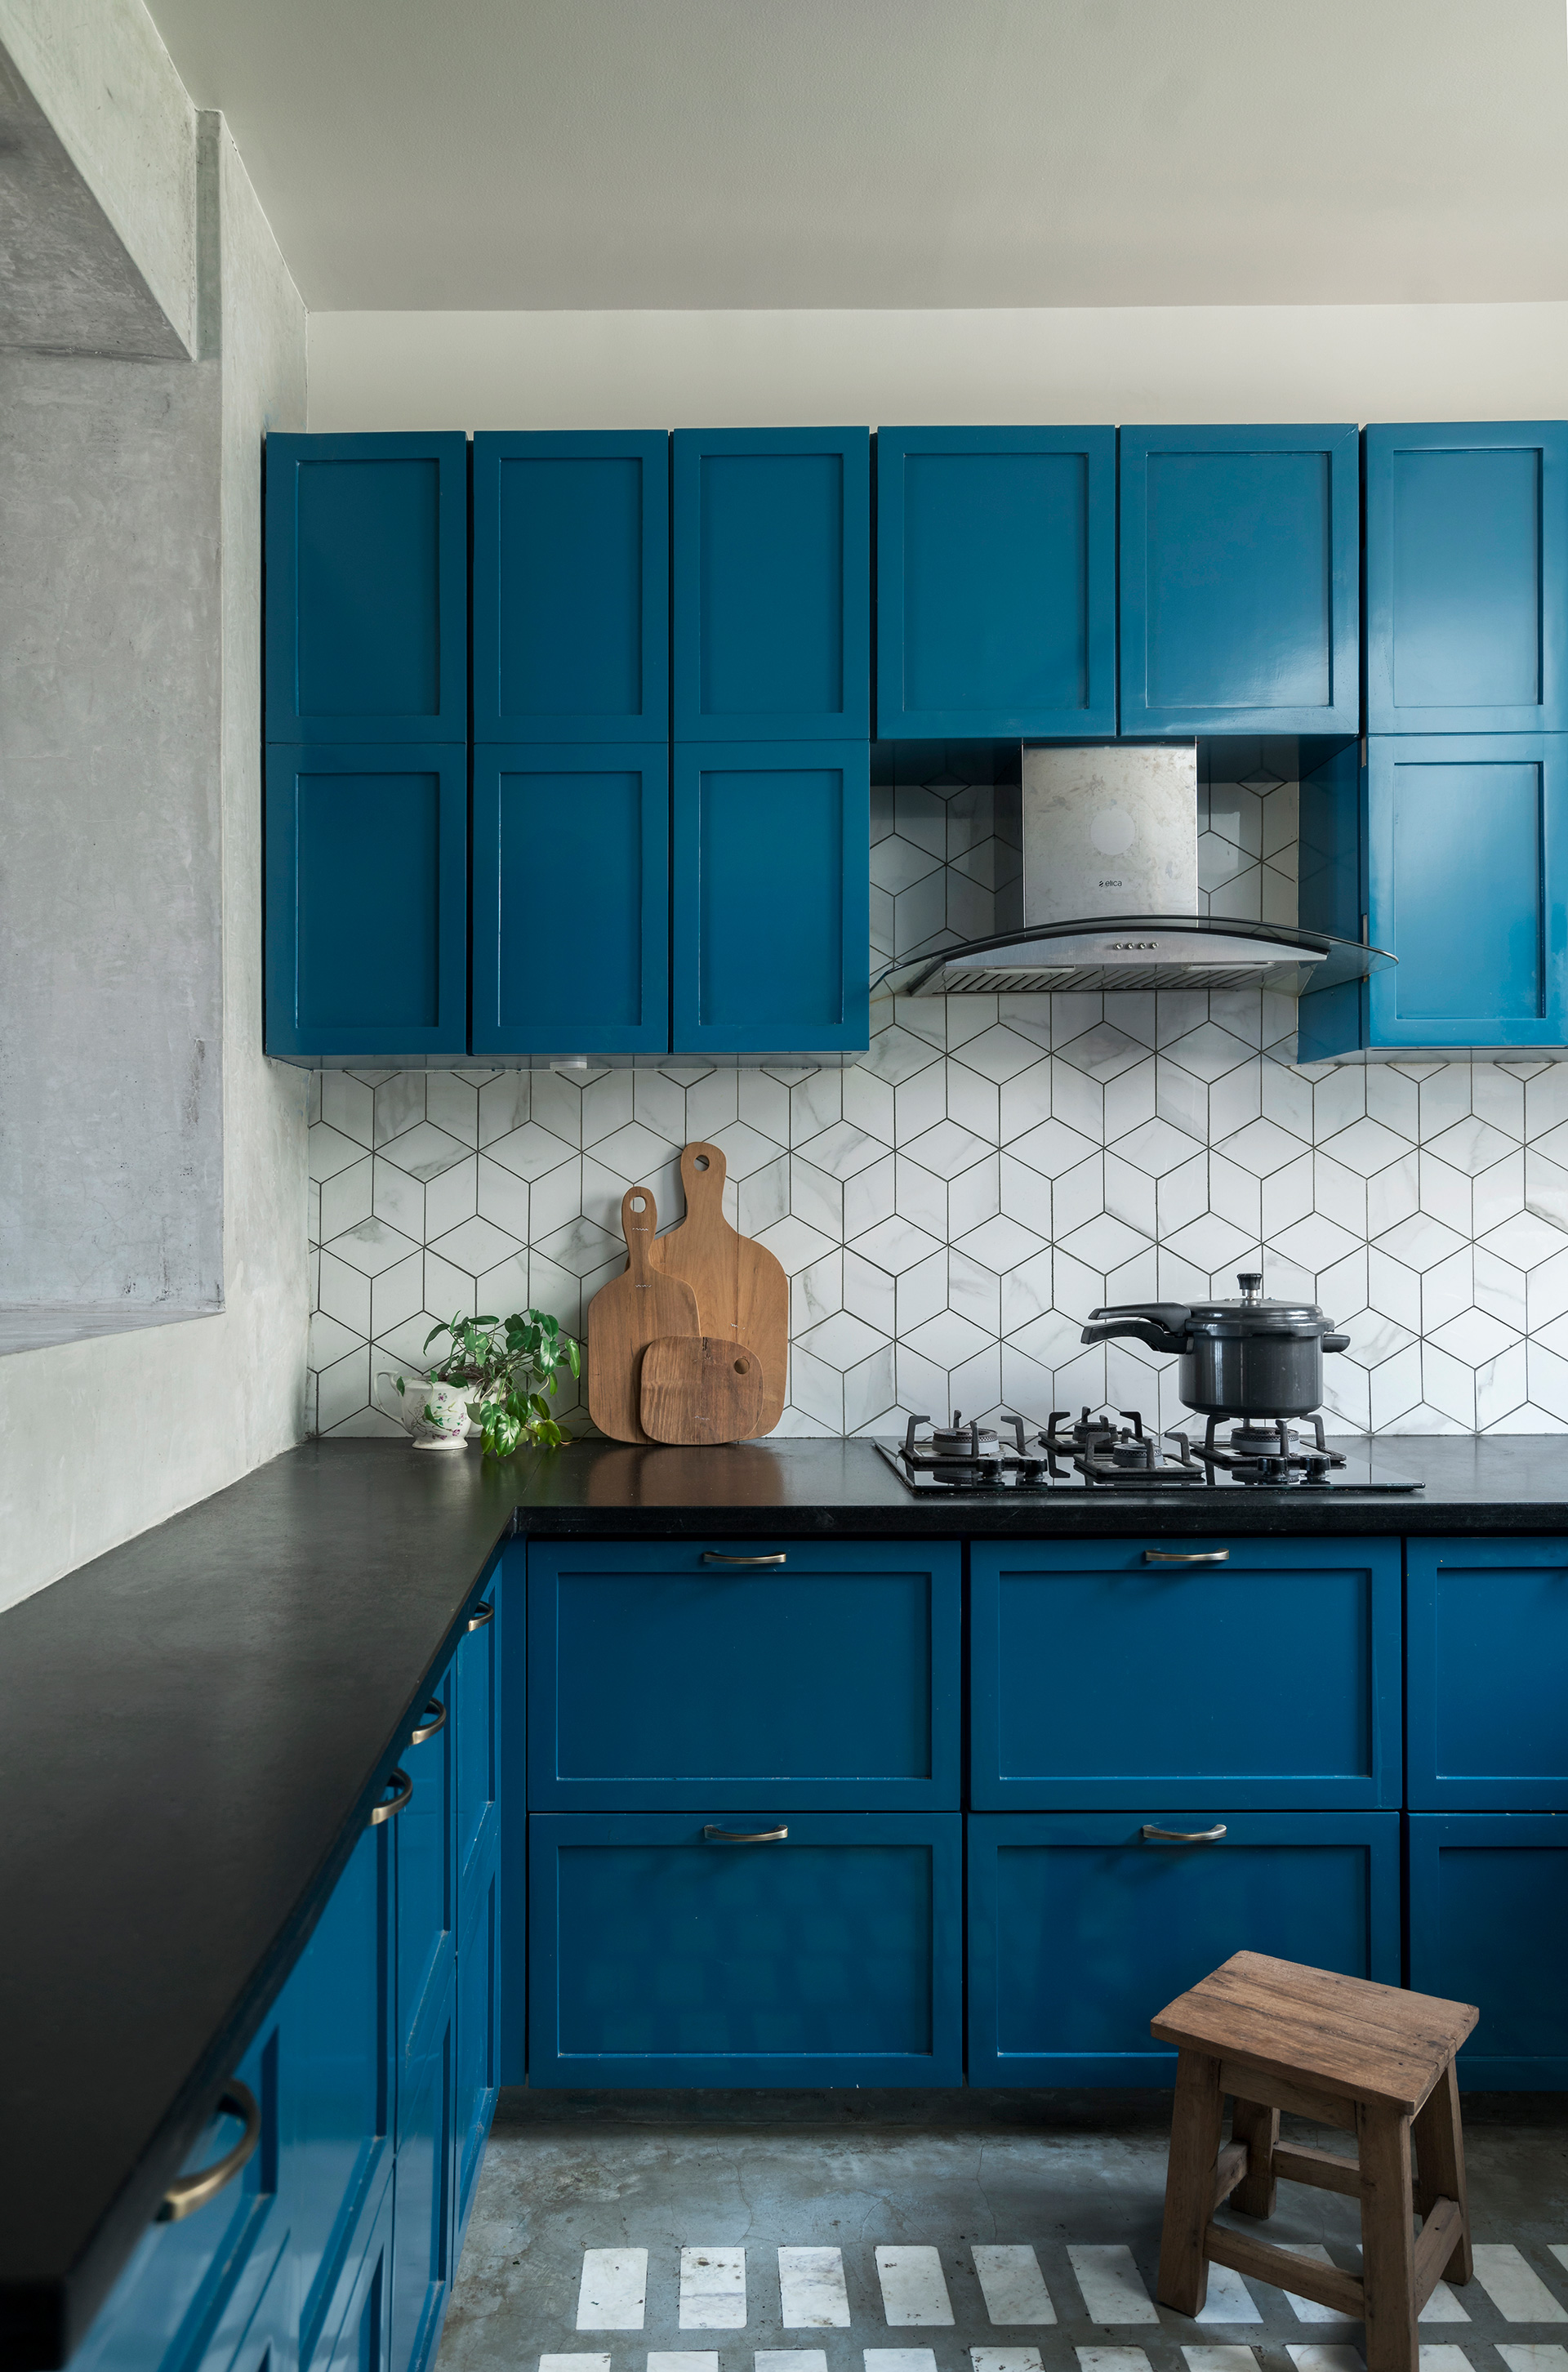 The blue cabinetry in the kitchen provides a cooling contrast to the earthy palette in the rest of the house | Amoeba Design | STIRworld